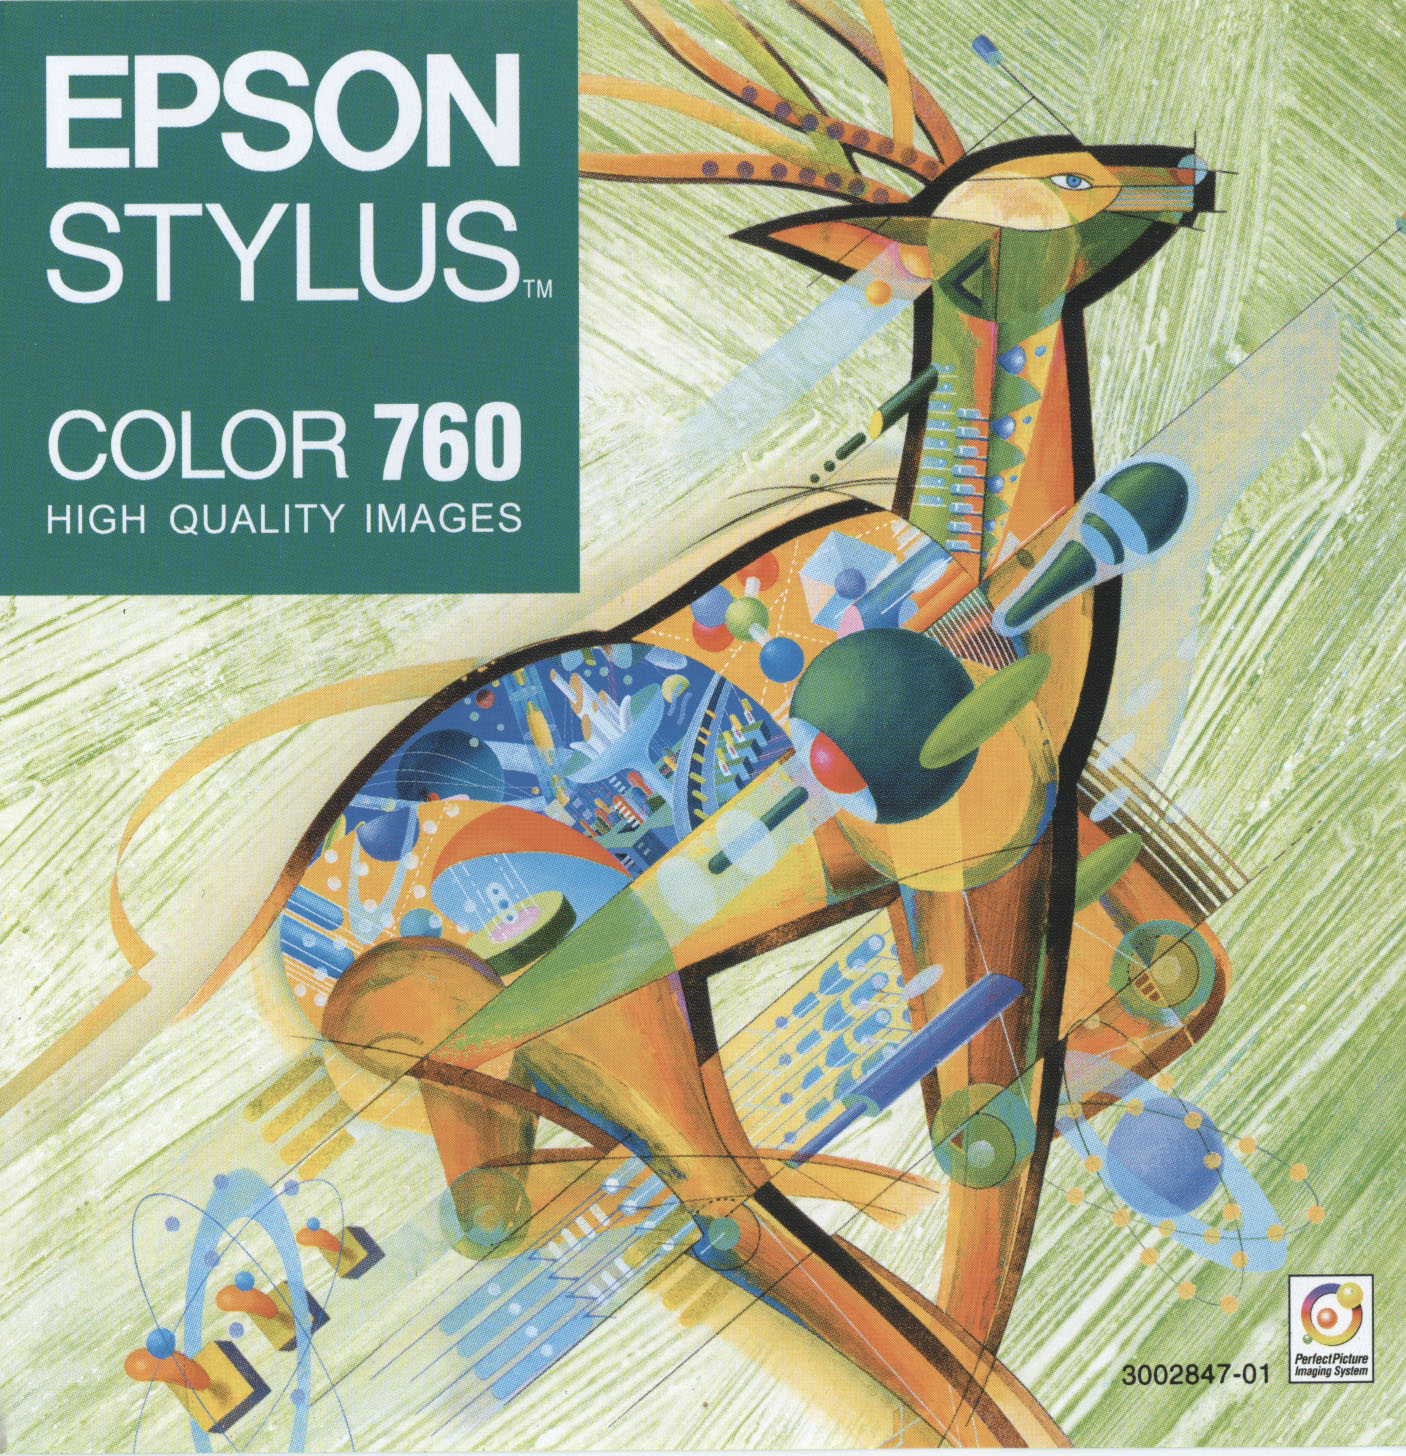 Epson Stylus Color 760 High Quality Images